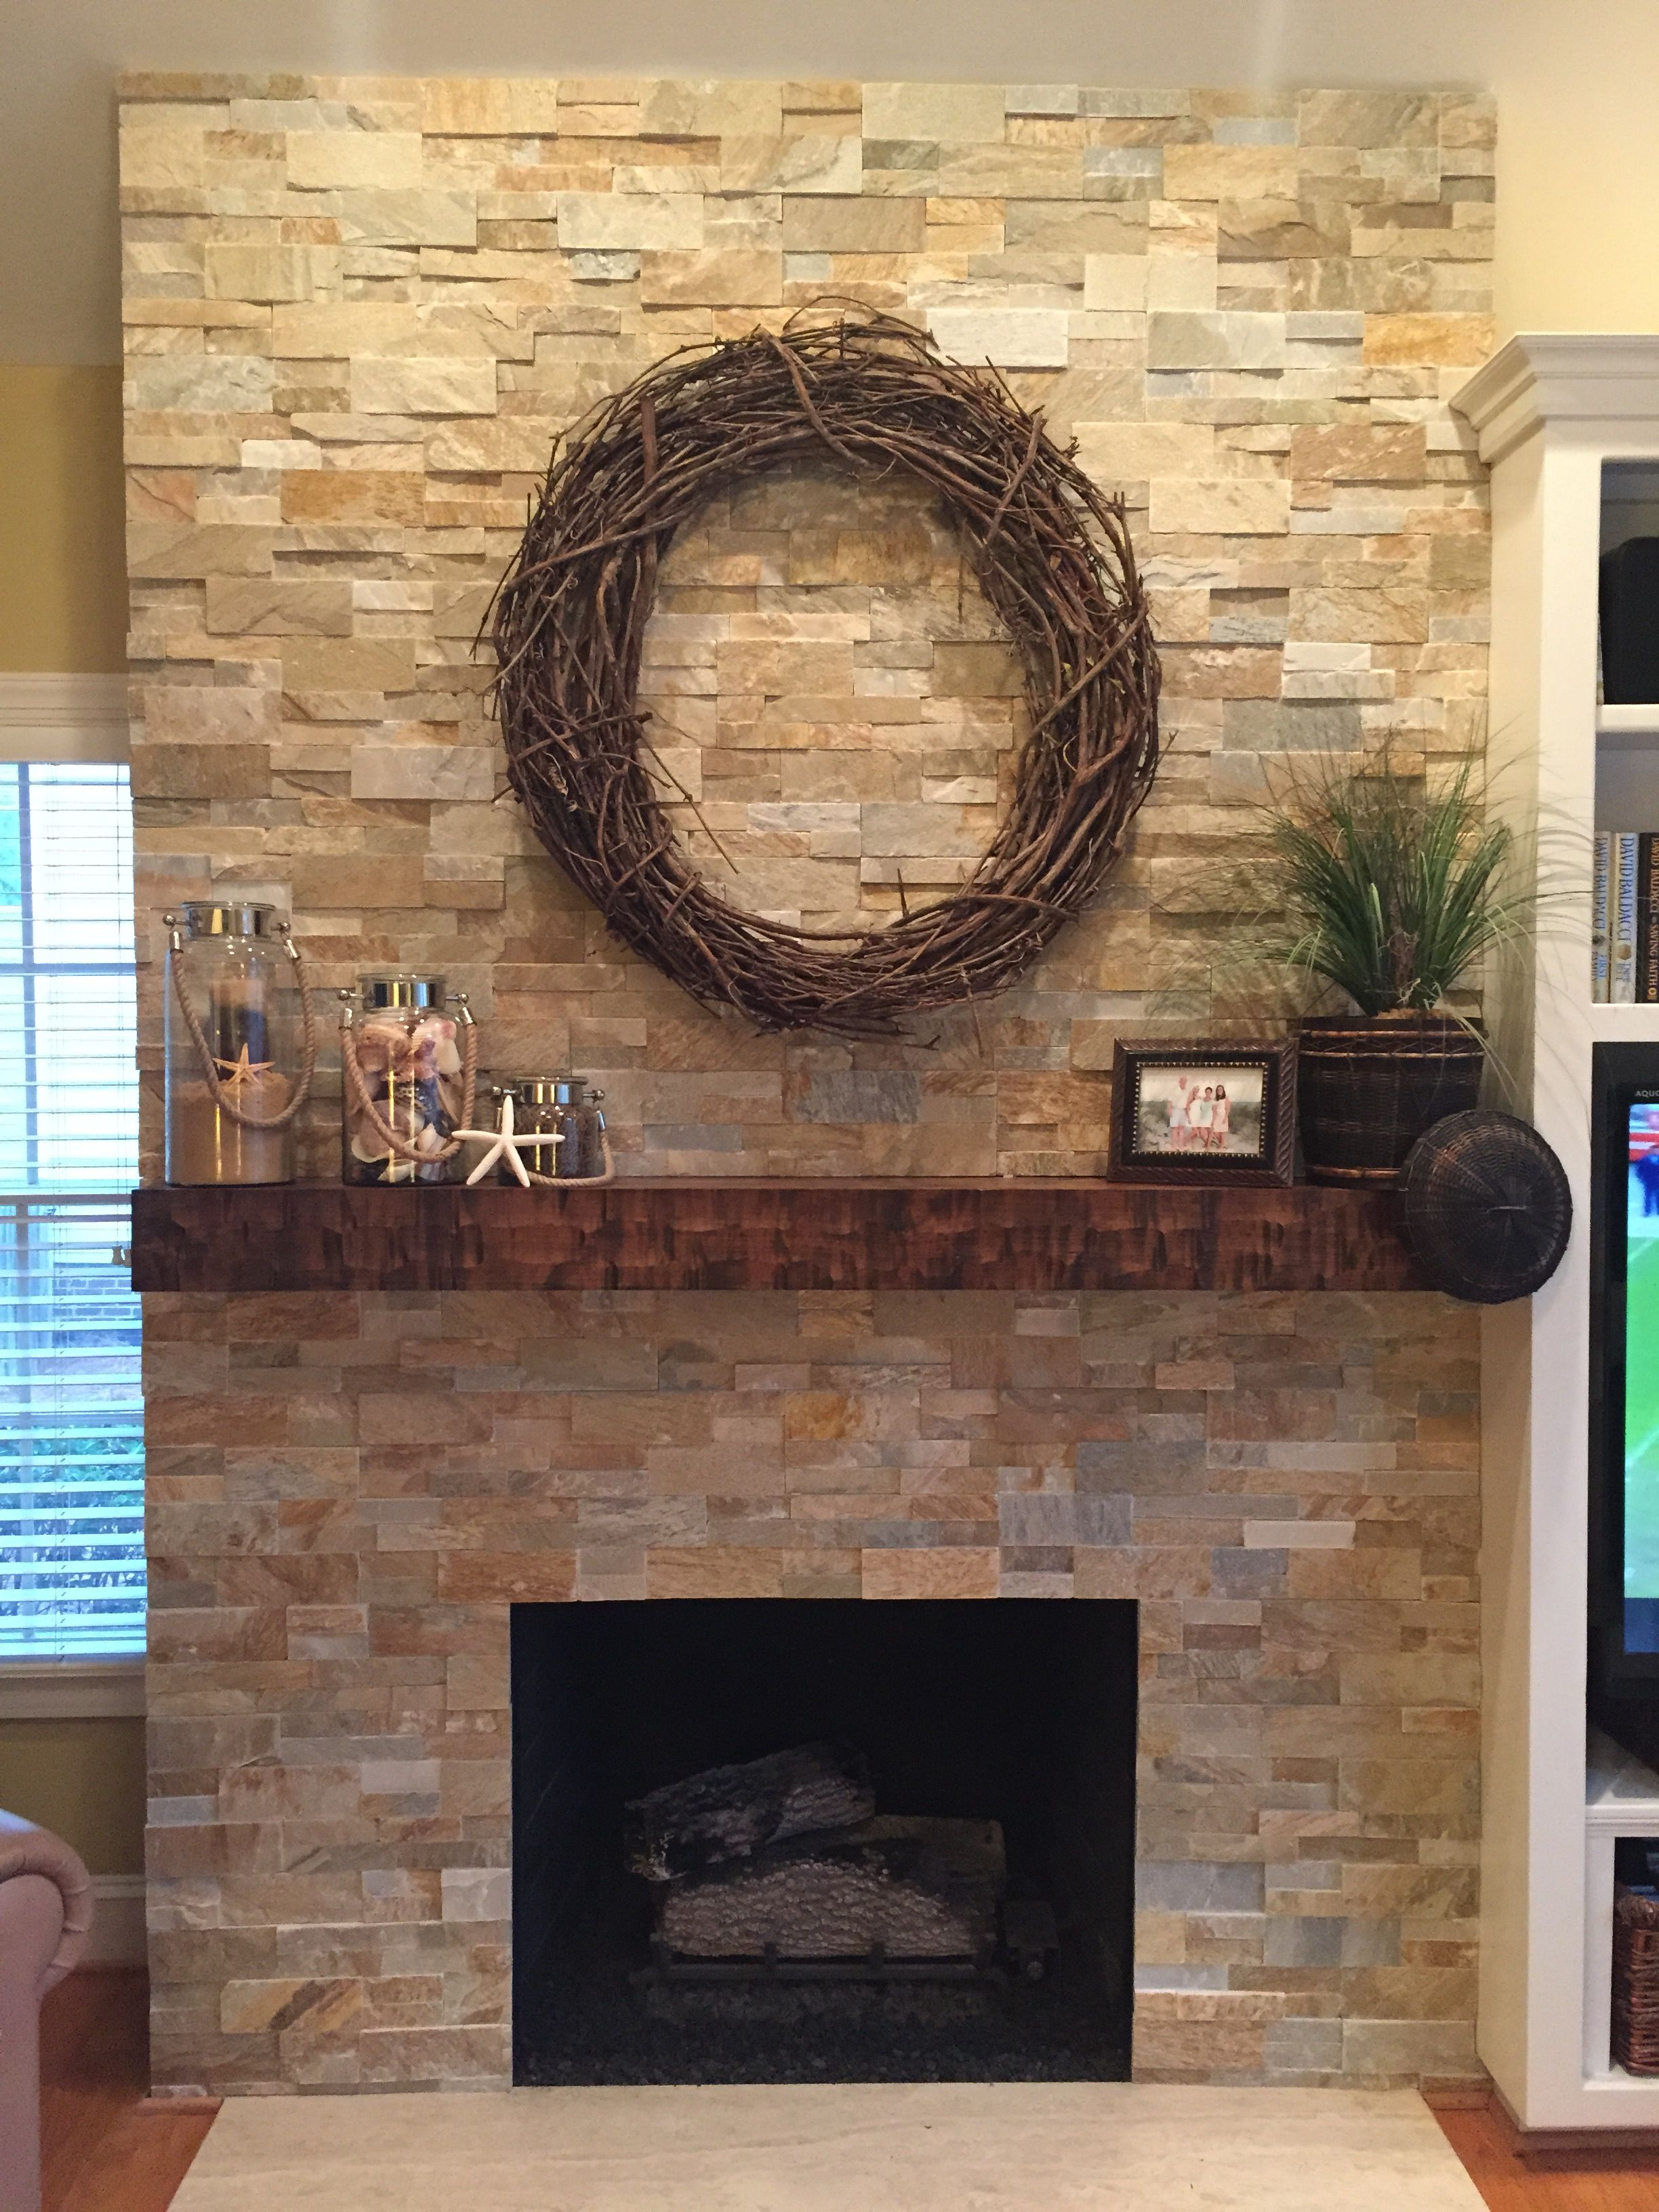 carr family fireplace wrapped in dry stacked stone veneers - How To Stone Veneer Fireplace